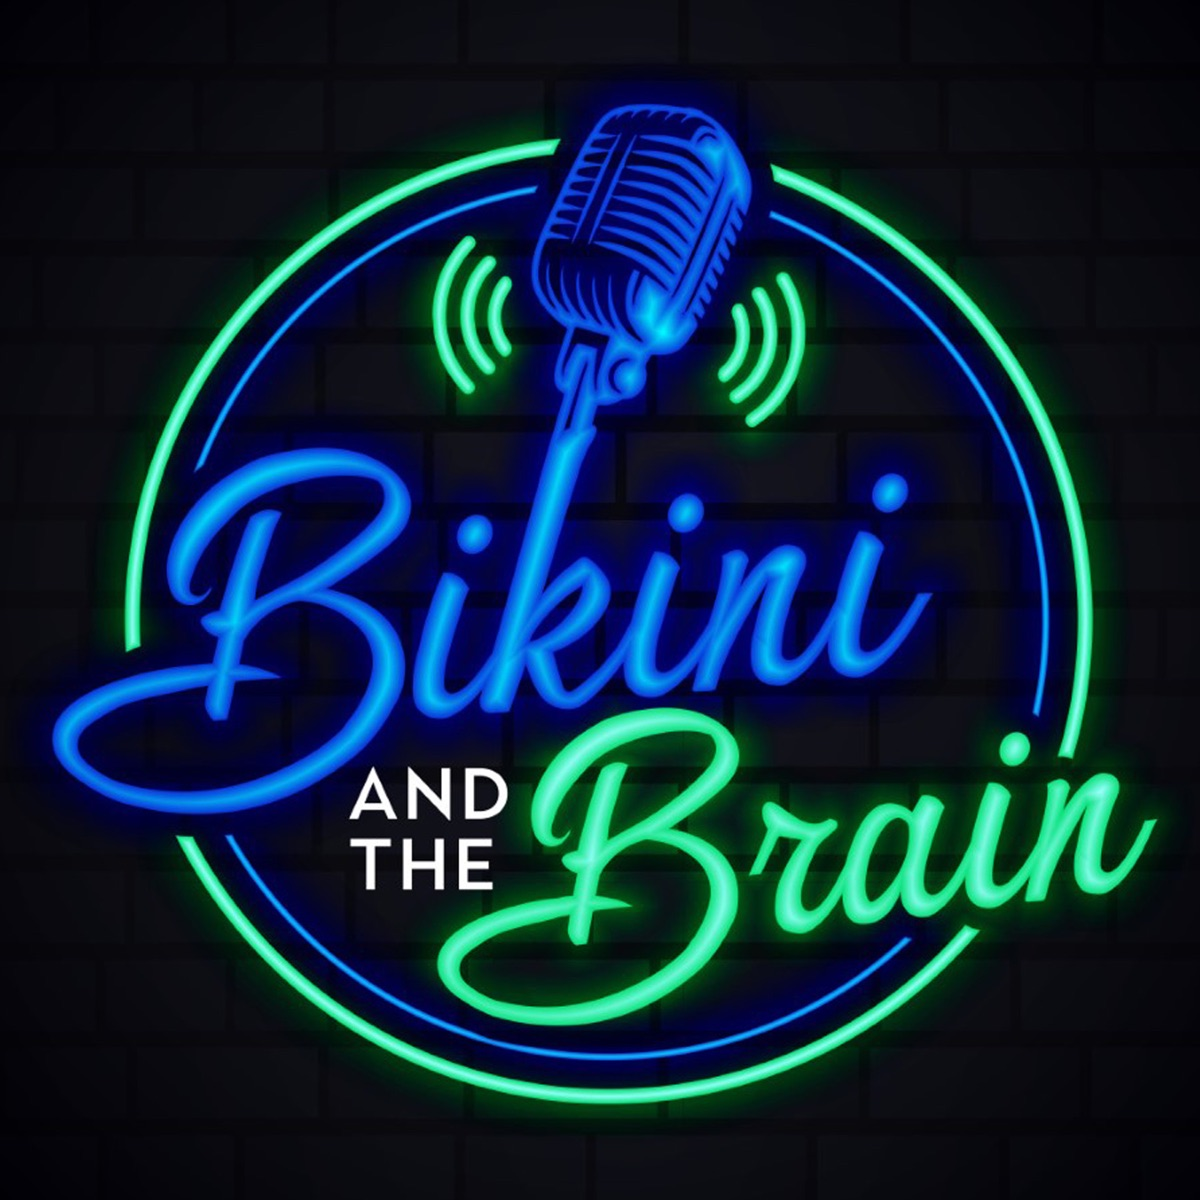 The Bikini and the Brain